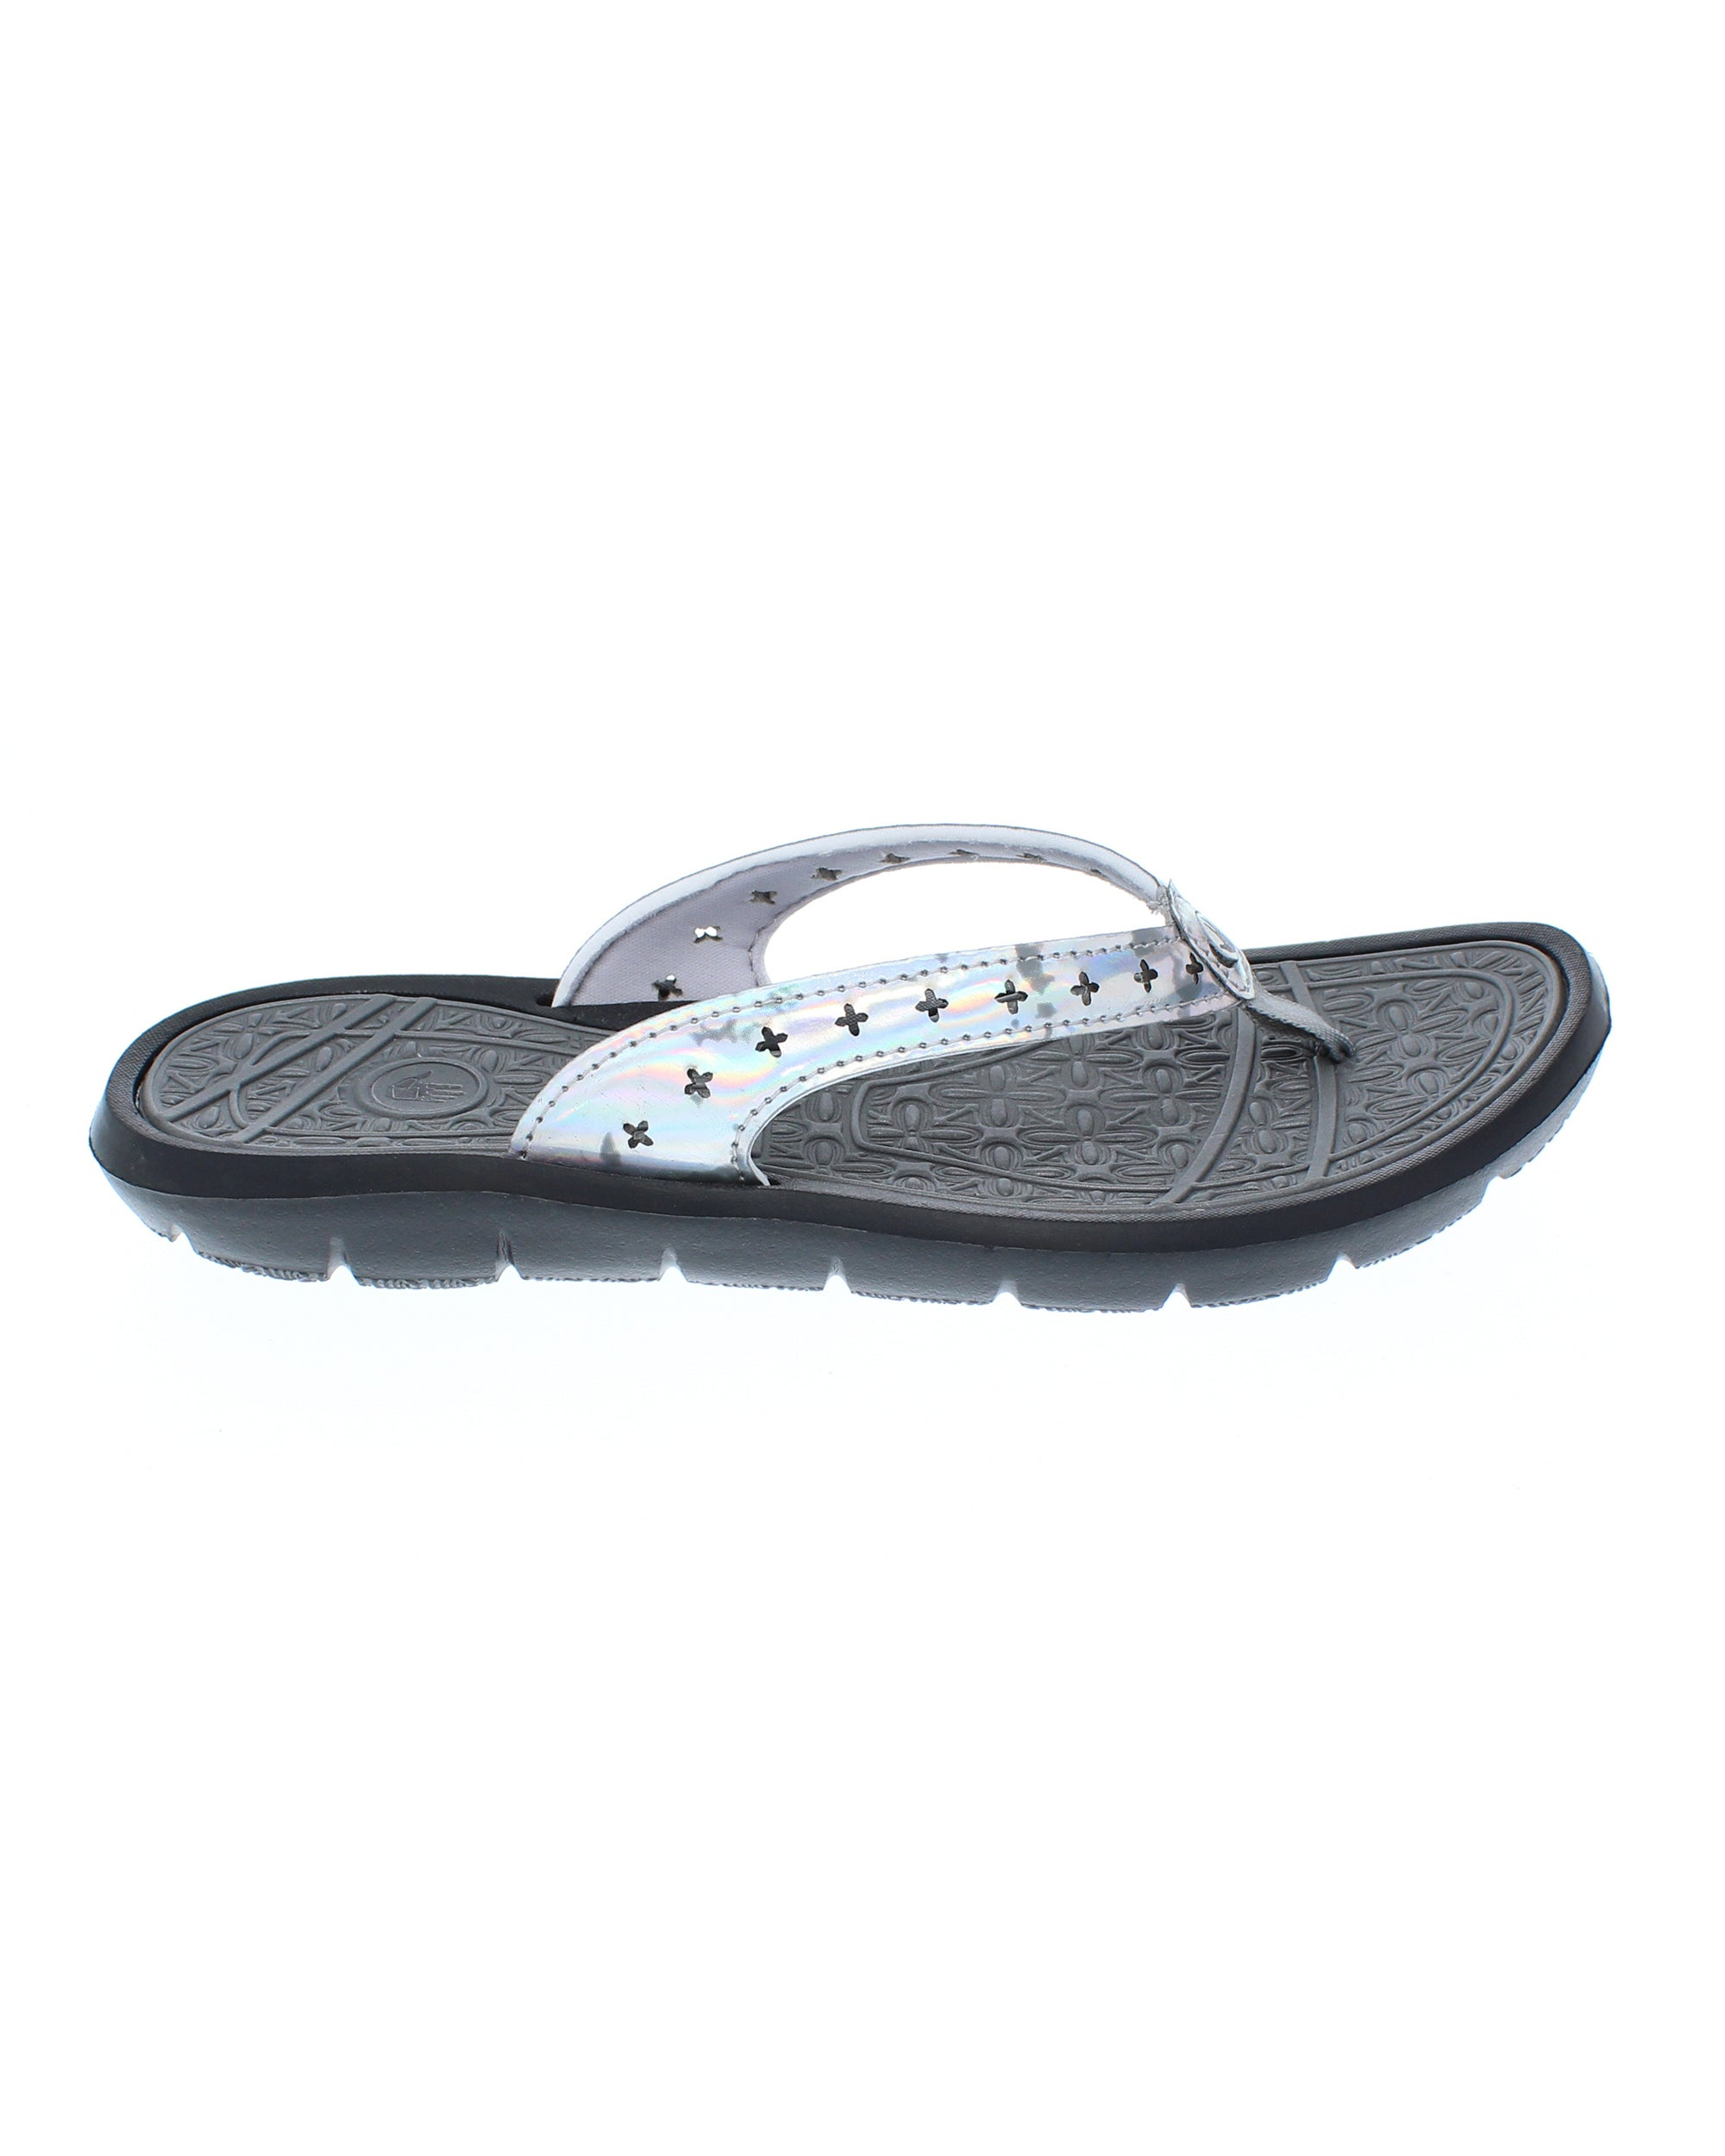 Women's Fame Flip-Flop Sandals - Black/Metallic